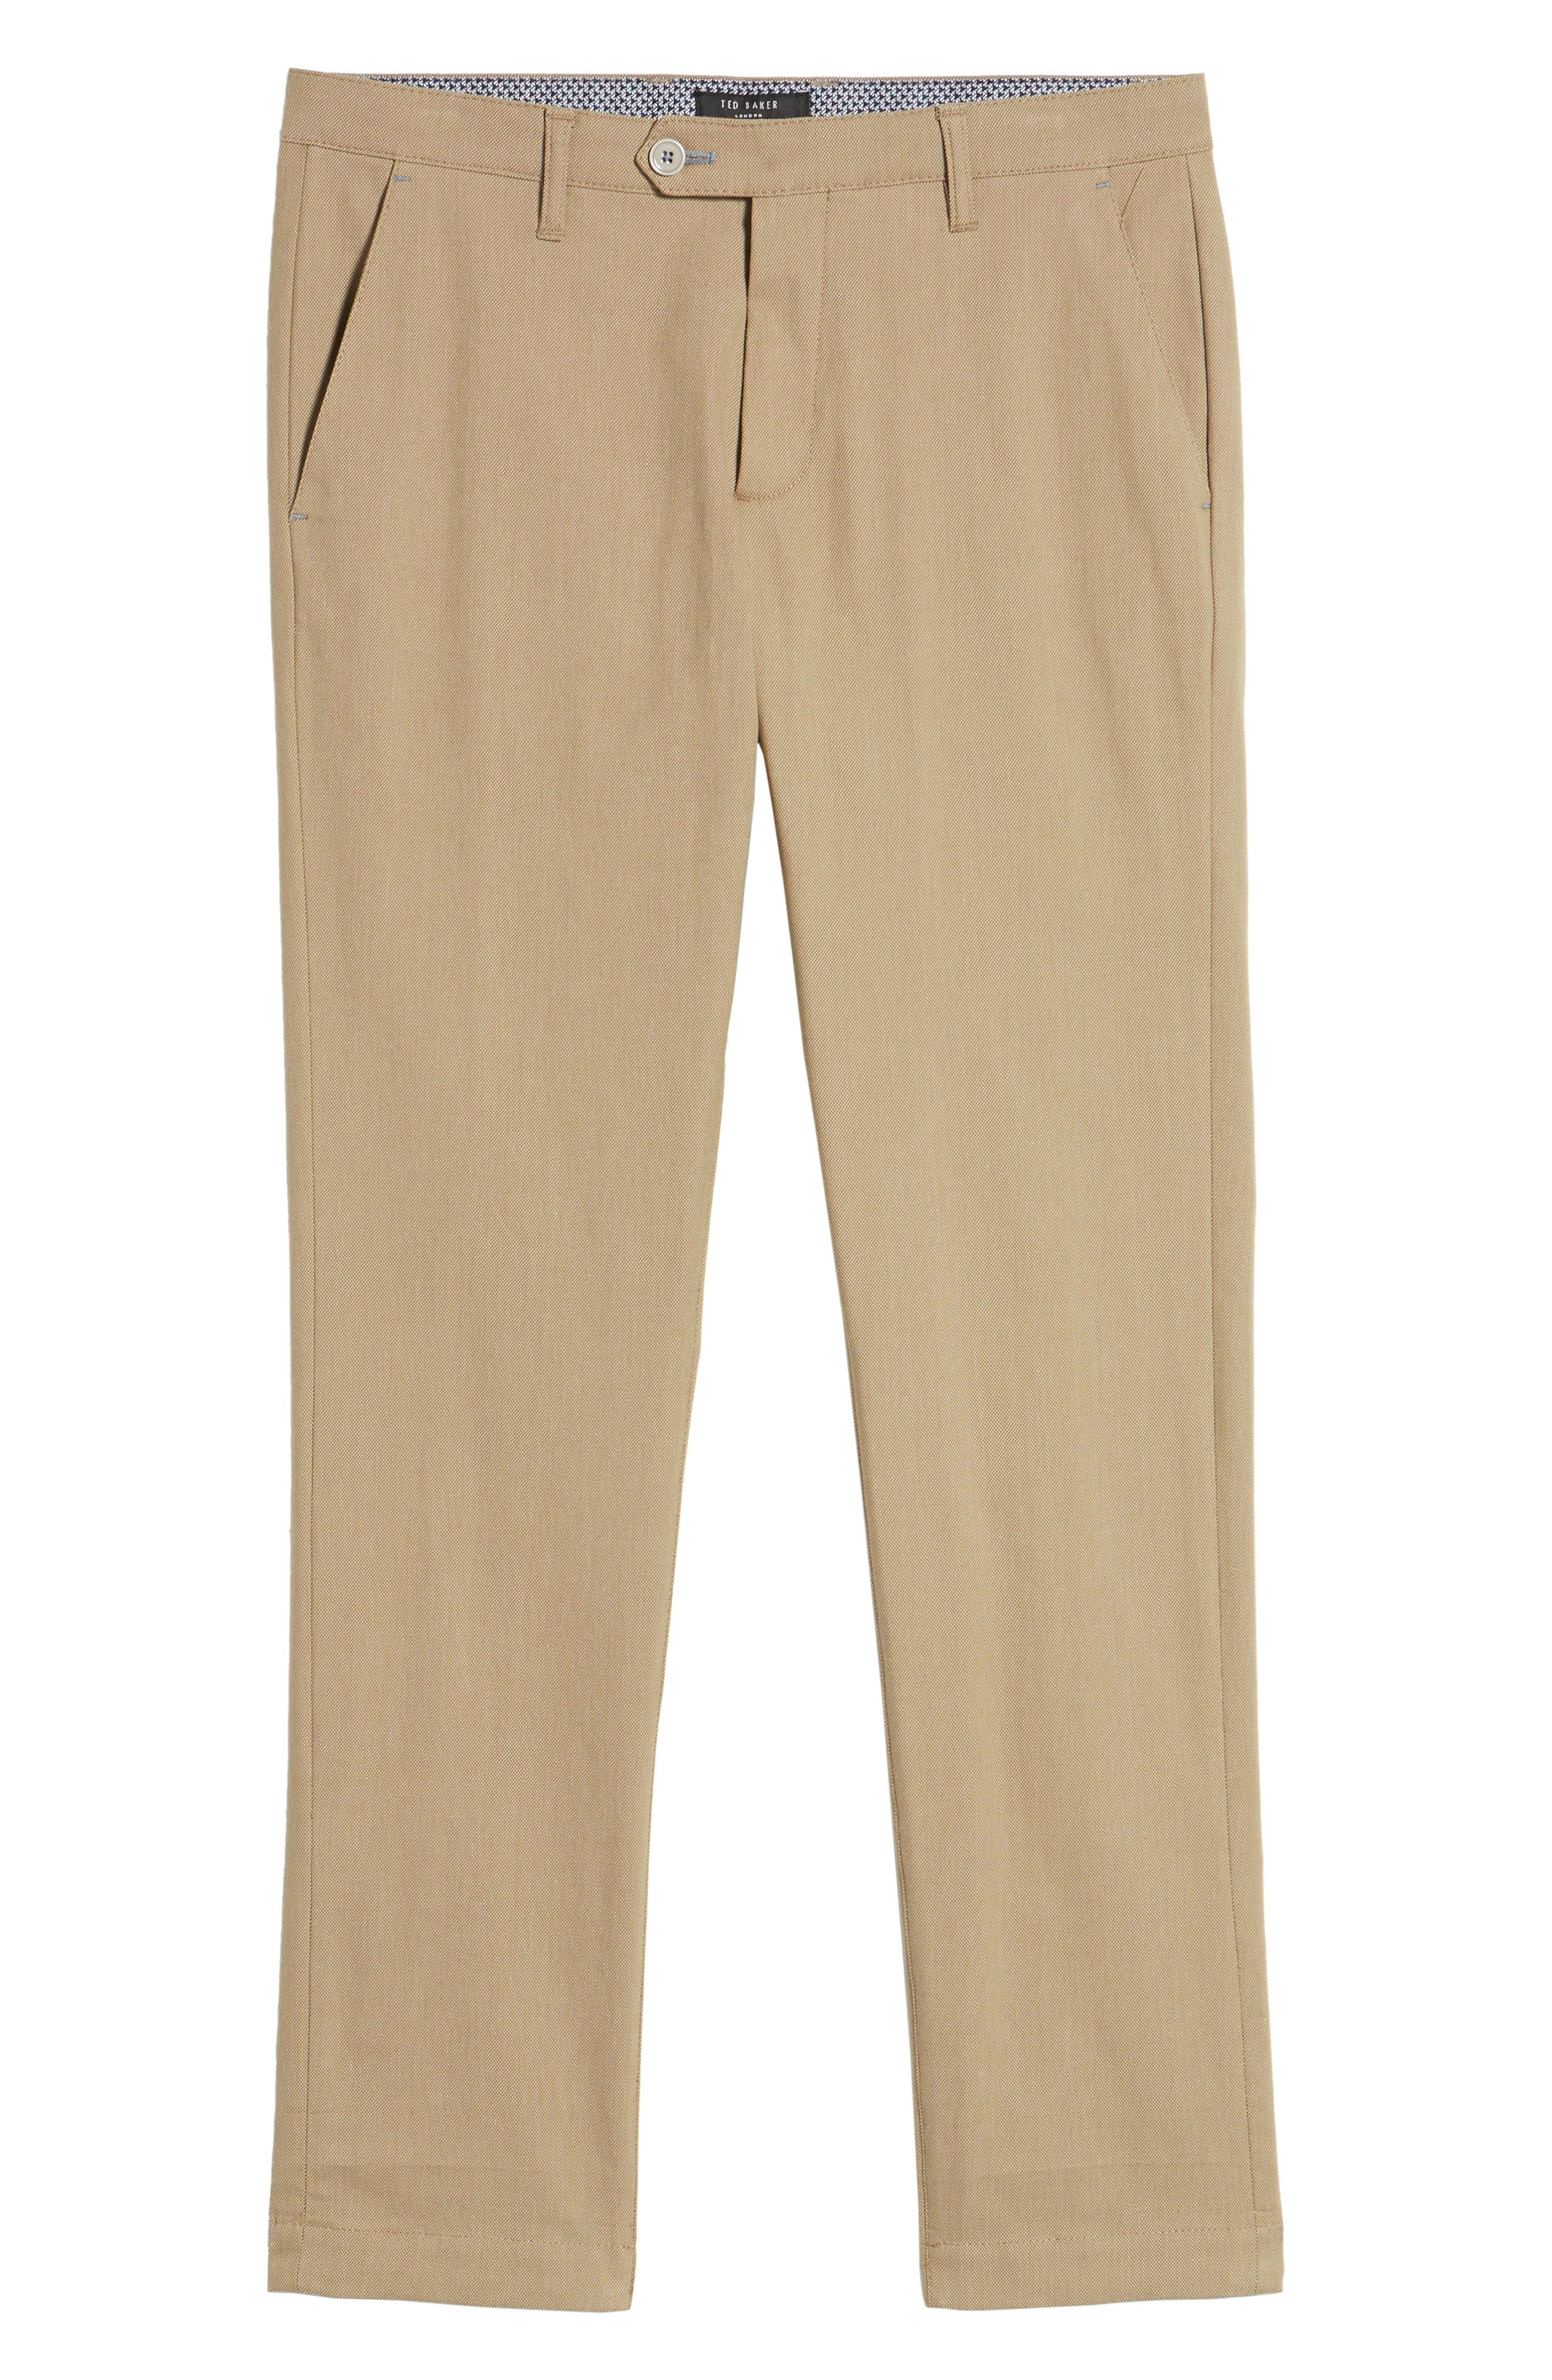 Holclas Classic Fit Chino Pants,                             Alternate thumbnail 6, color,                             250